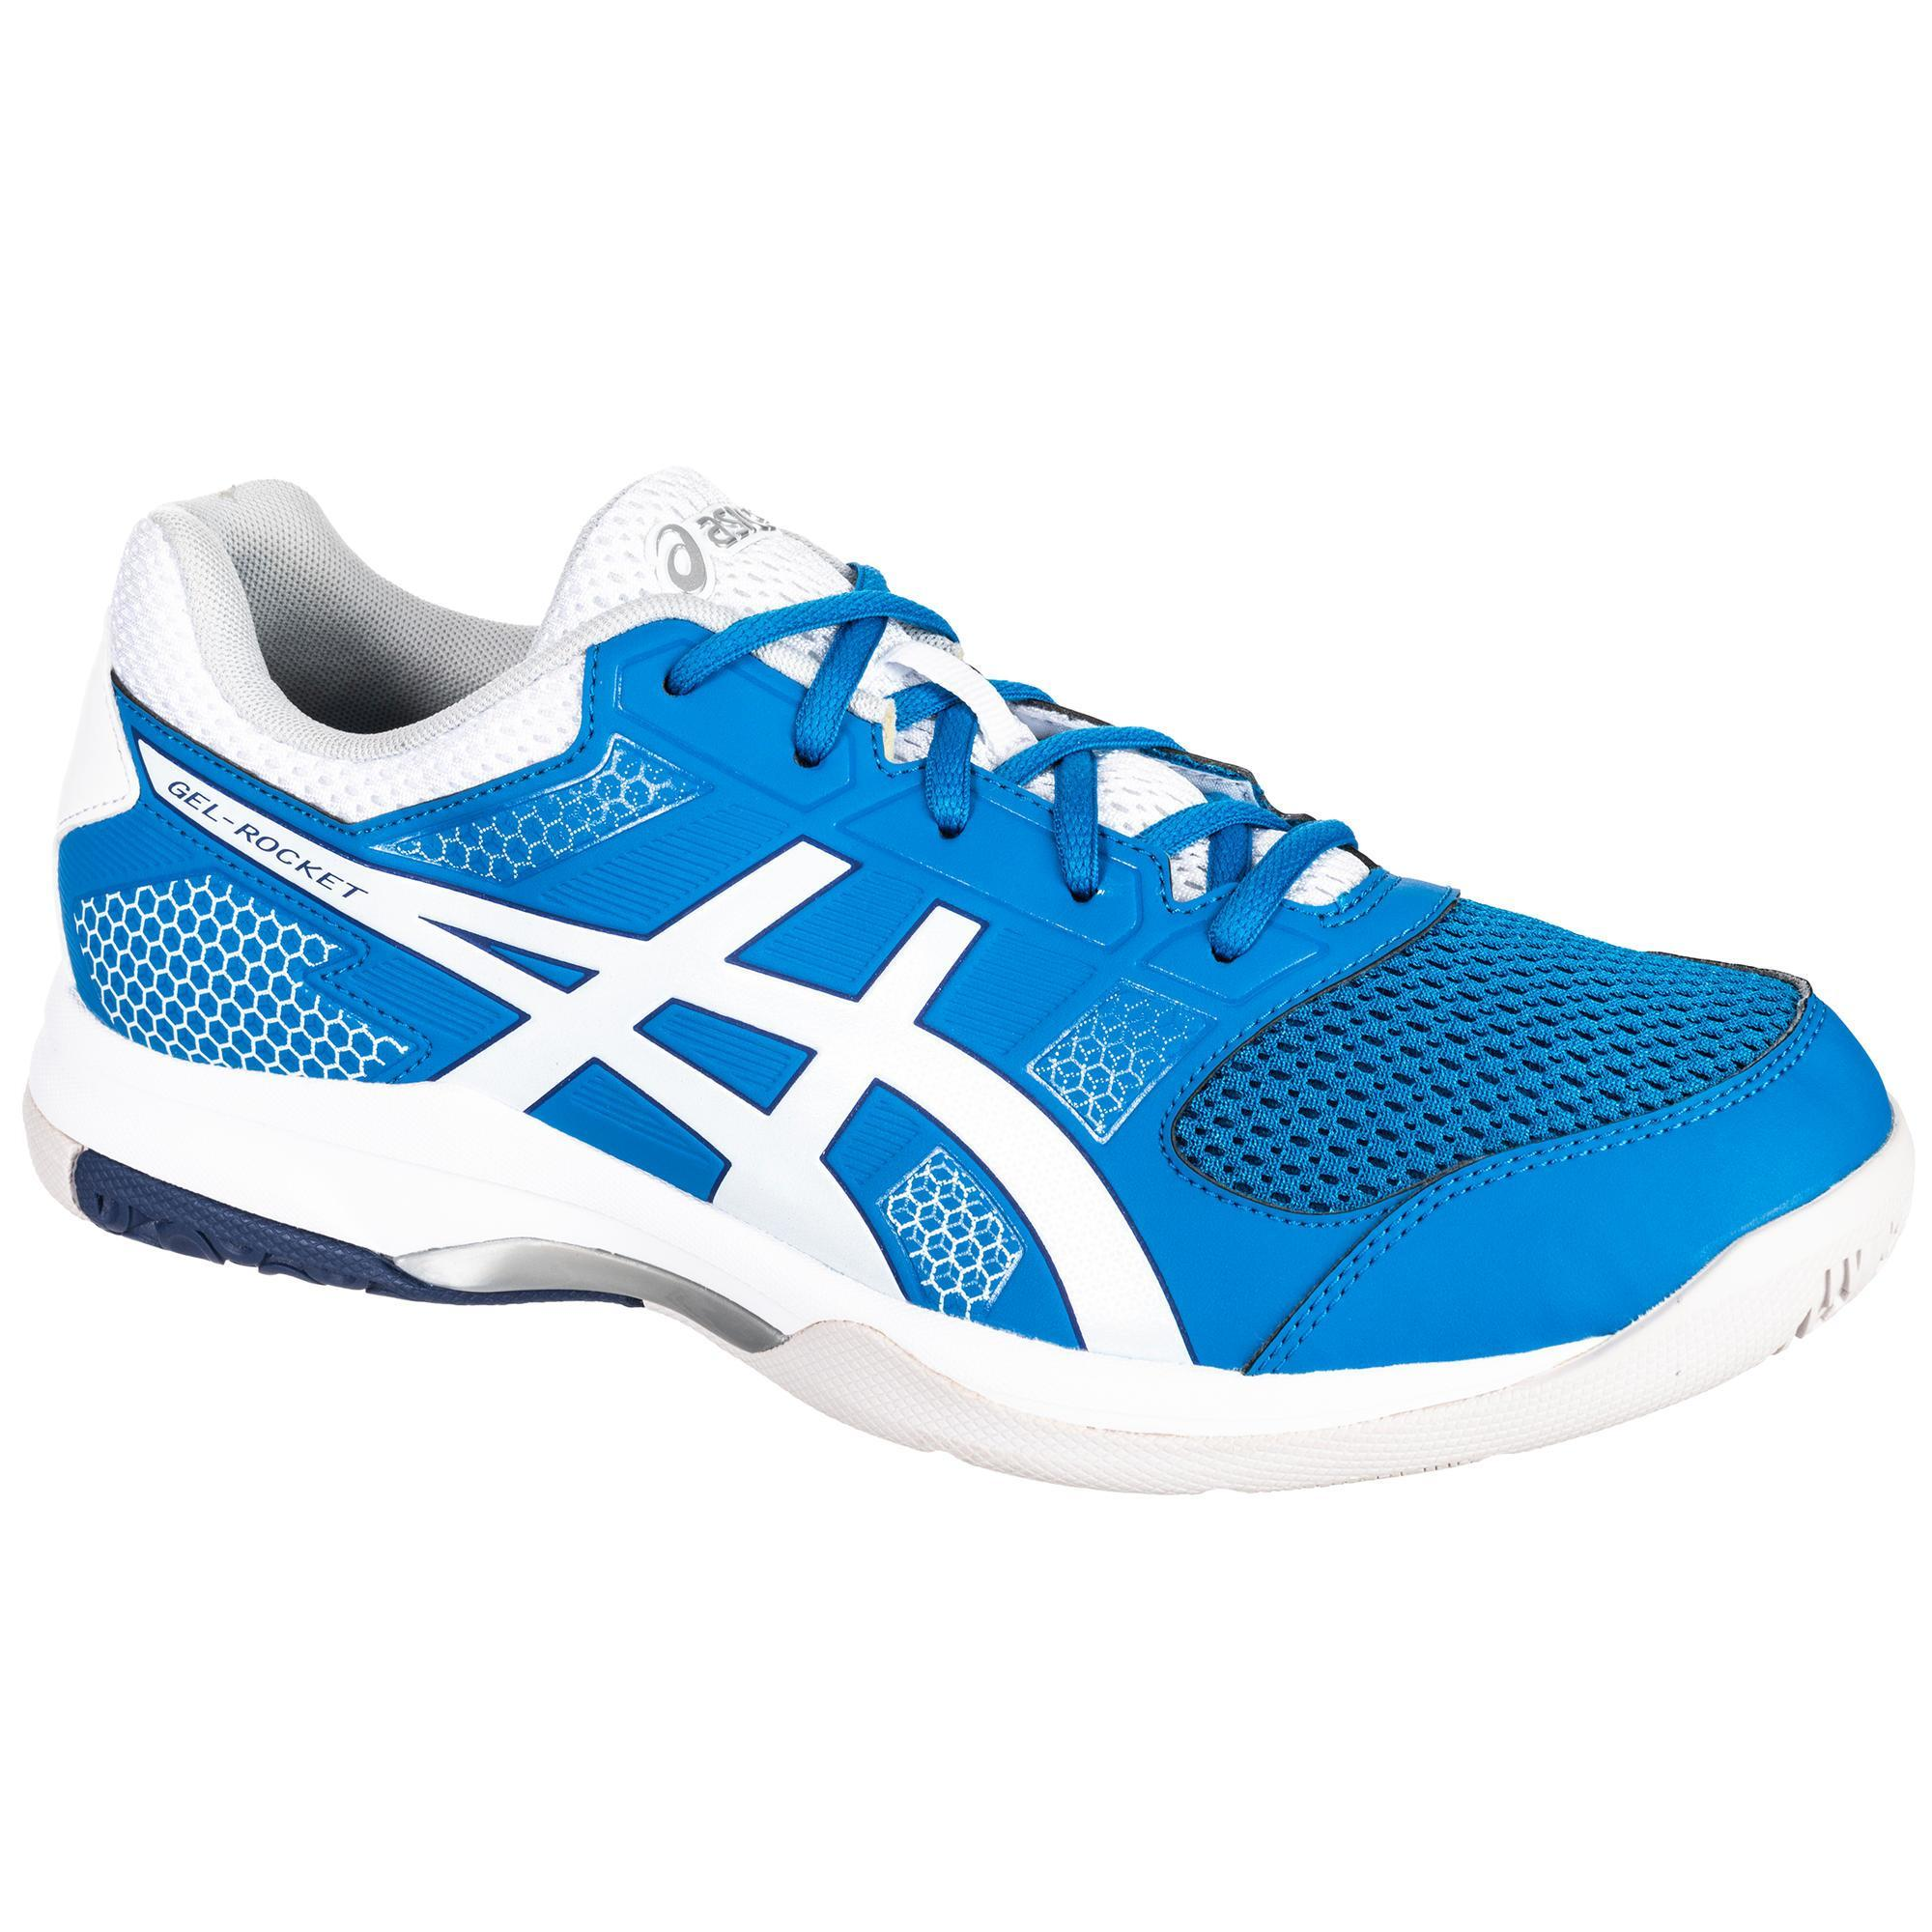 Asics Badmintonschoenen Asics Gel Rocket 8 blauw/it